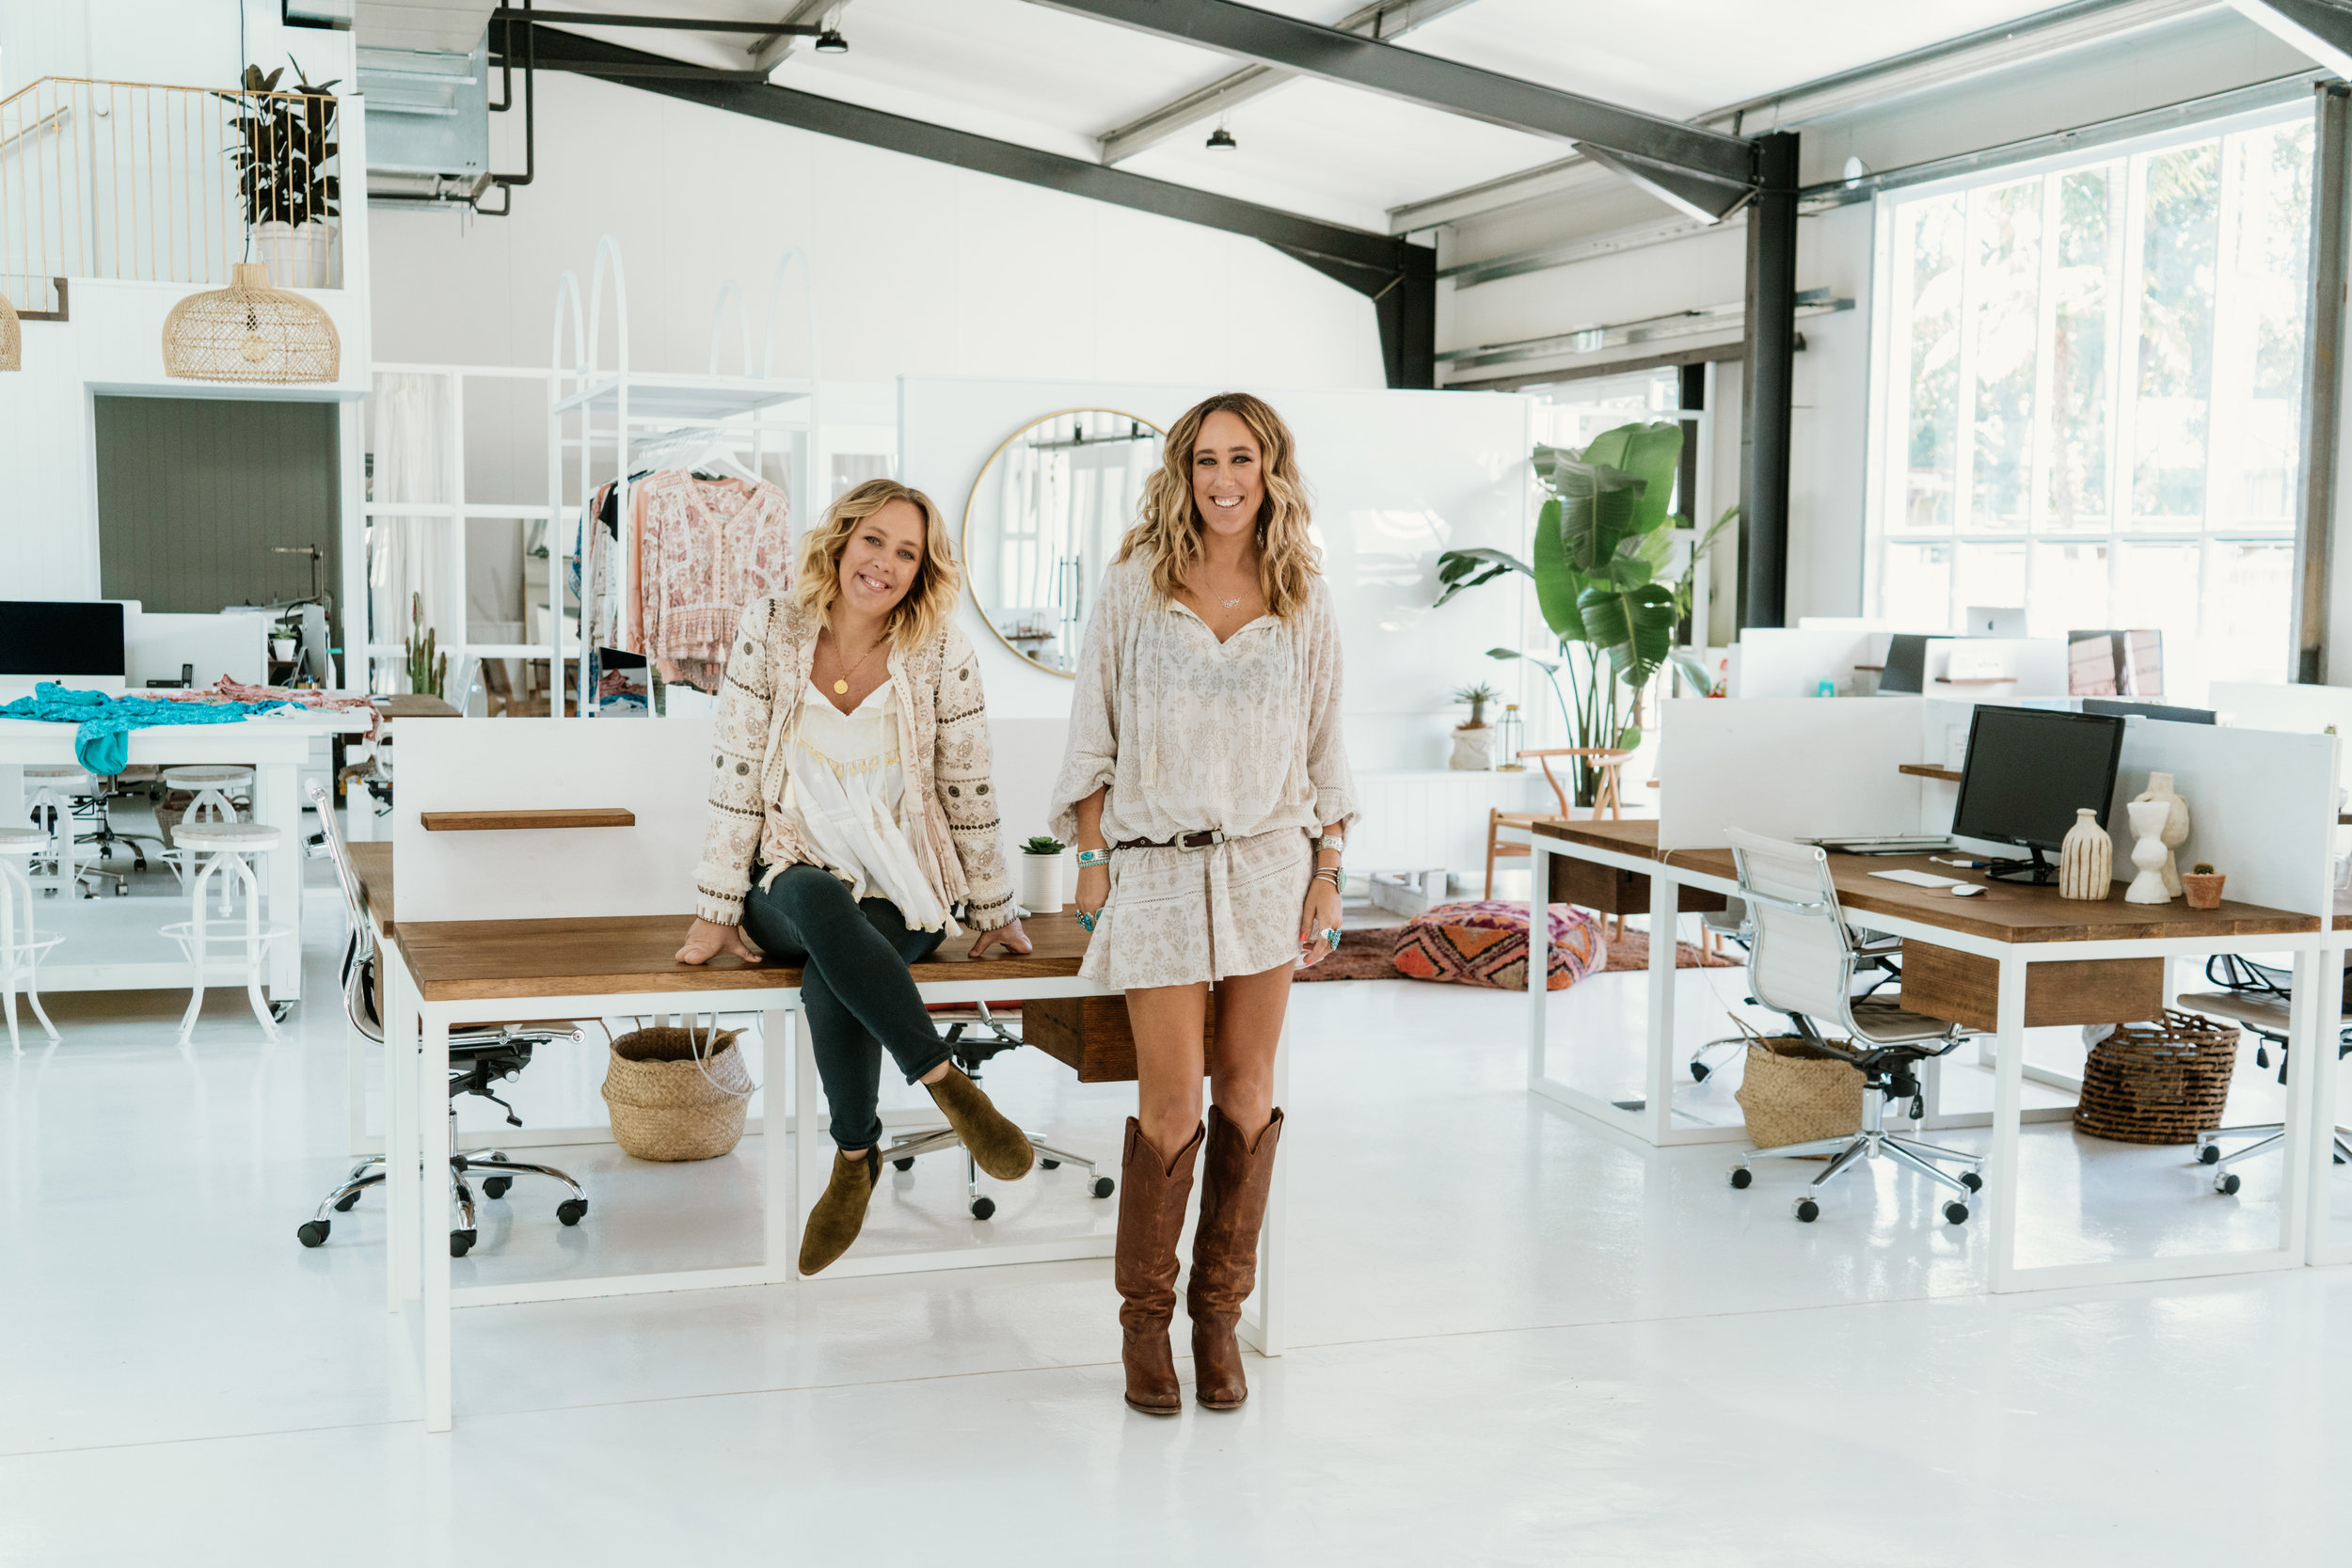 Elizabeth Abegg and Isabella Pennefather - cofounders of Spell & The Gypsy Collective